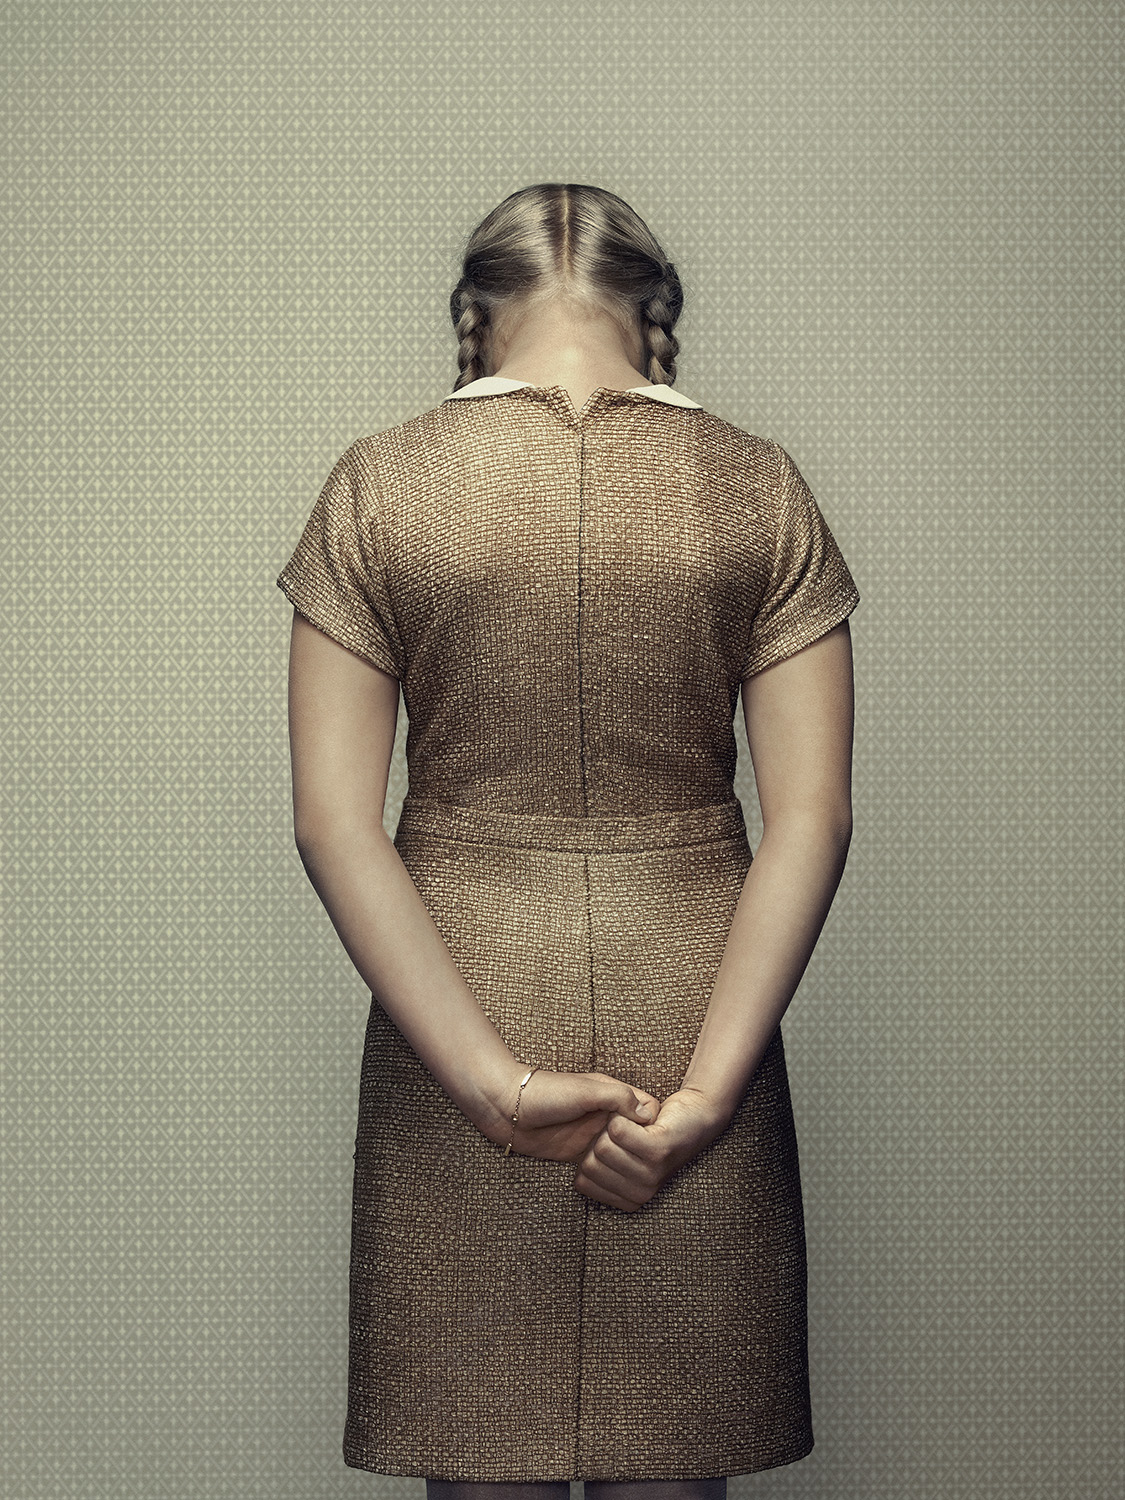 Stylized photos by Dutch master go on exhibition